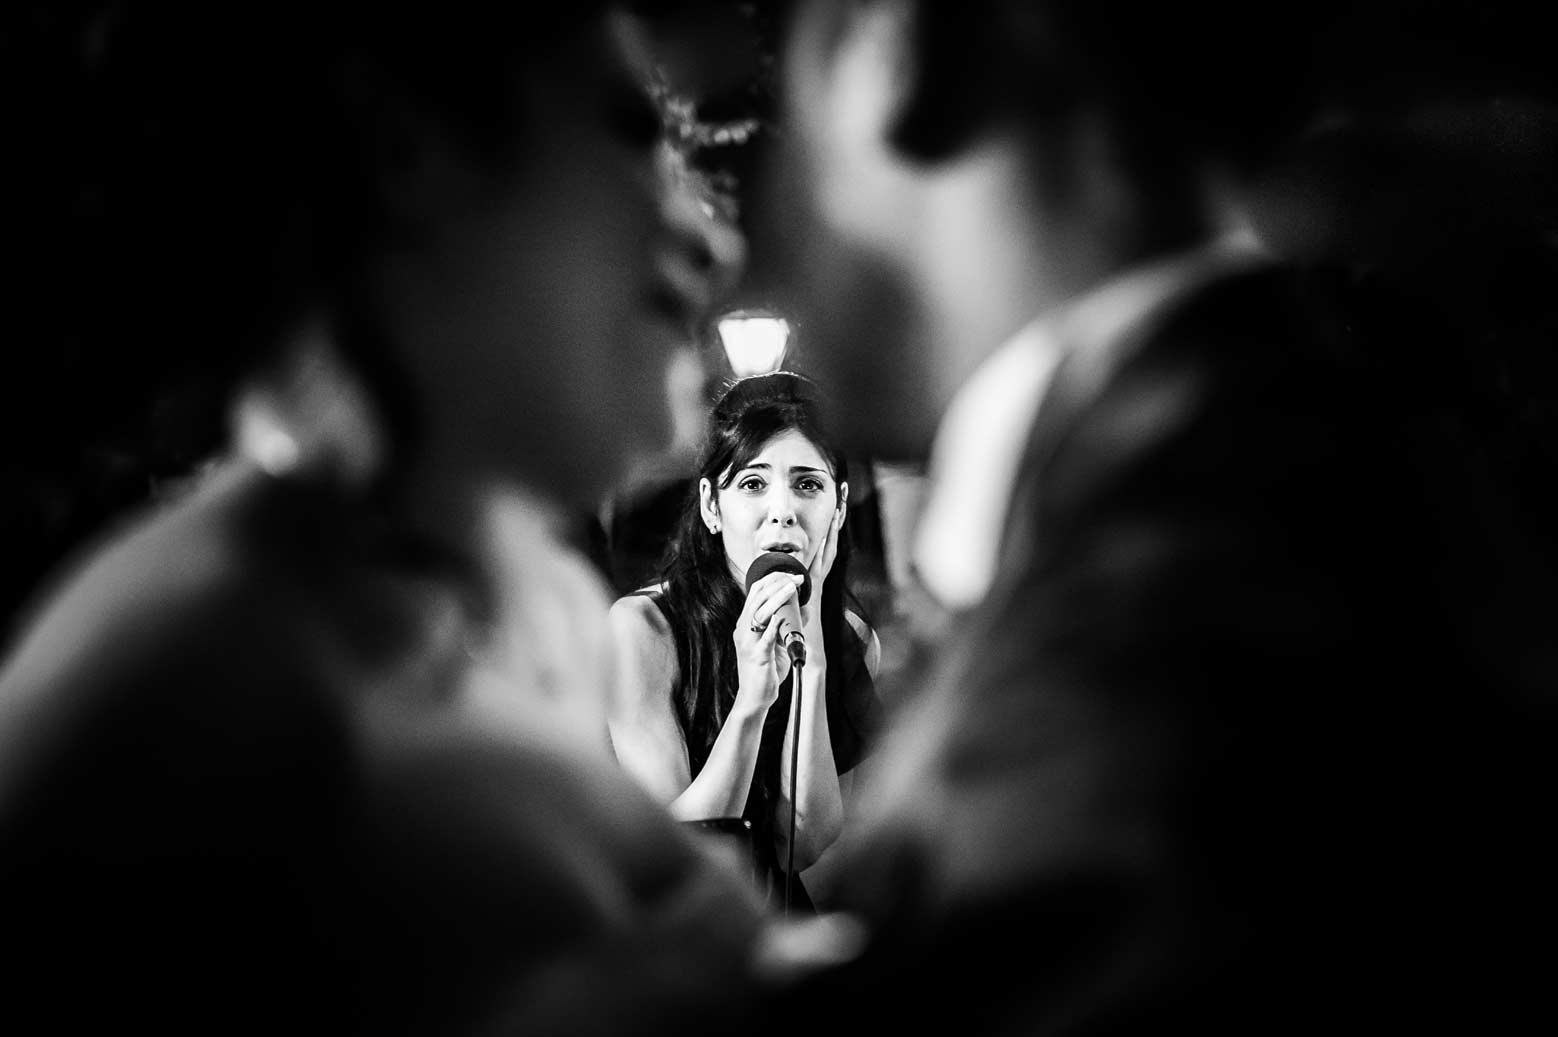 Reportage-Wedding-Photographer-in-Italy-Rome-Reception